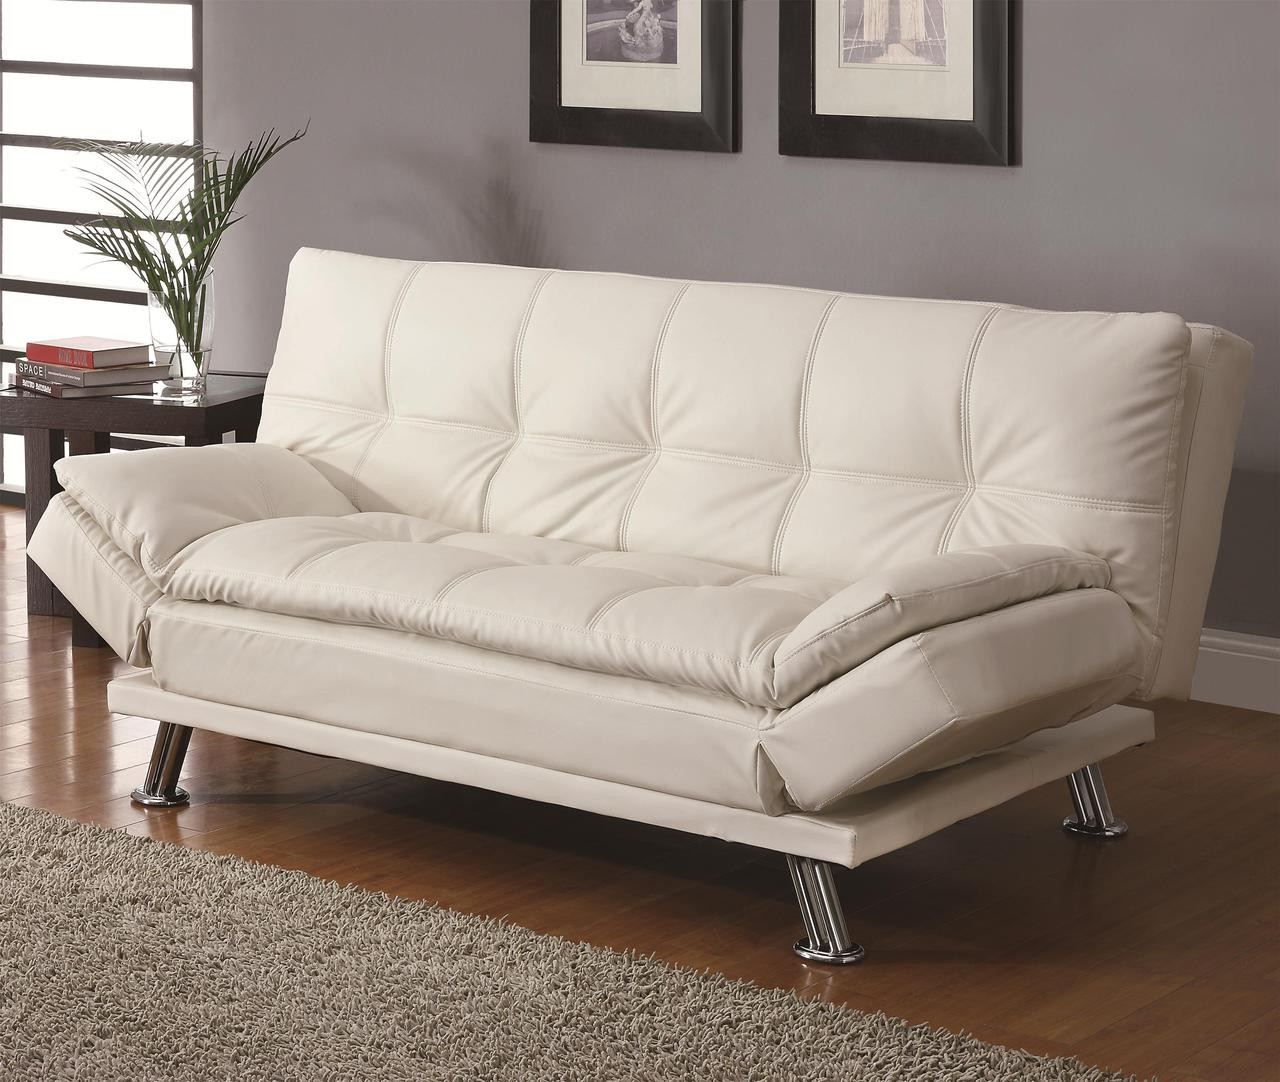 Coaster Dilleston Contemporary Sleeper Sofa Bed in White